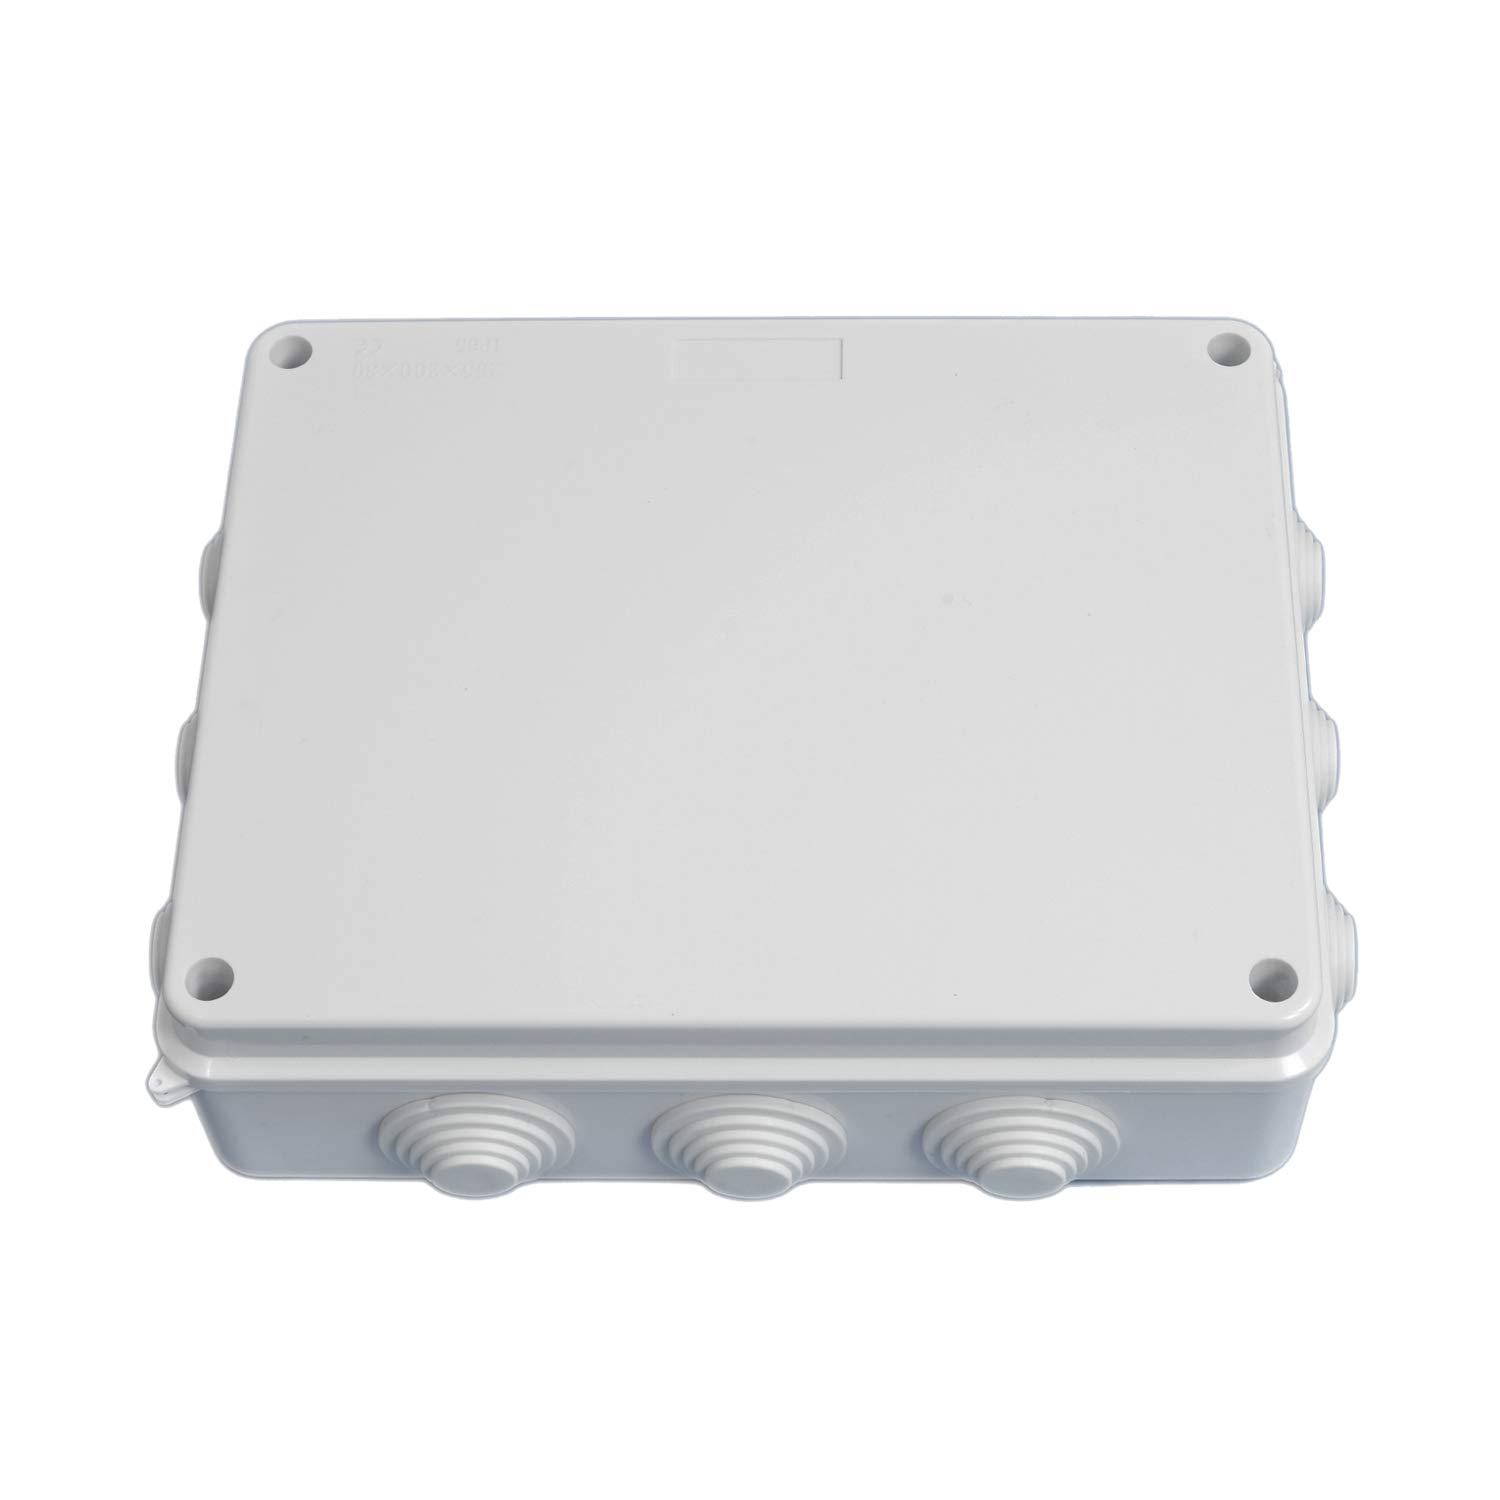 LoveDeal 10'' x 7.9'' x 3.1''(255mmx200mmx80mm) ABS Junction box, Universal Electrical Power Project Enclosure, CCTV Project Case, 12 Way, Dustproof Waterproof IP65, perfect for Indoor & Outdoor